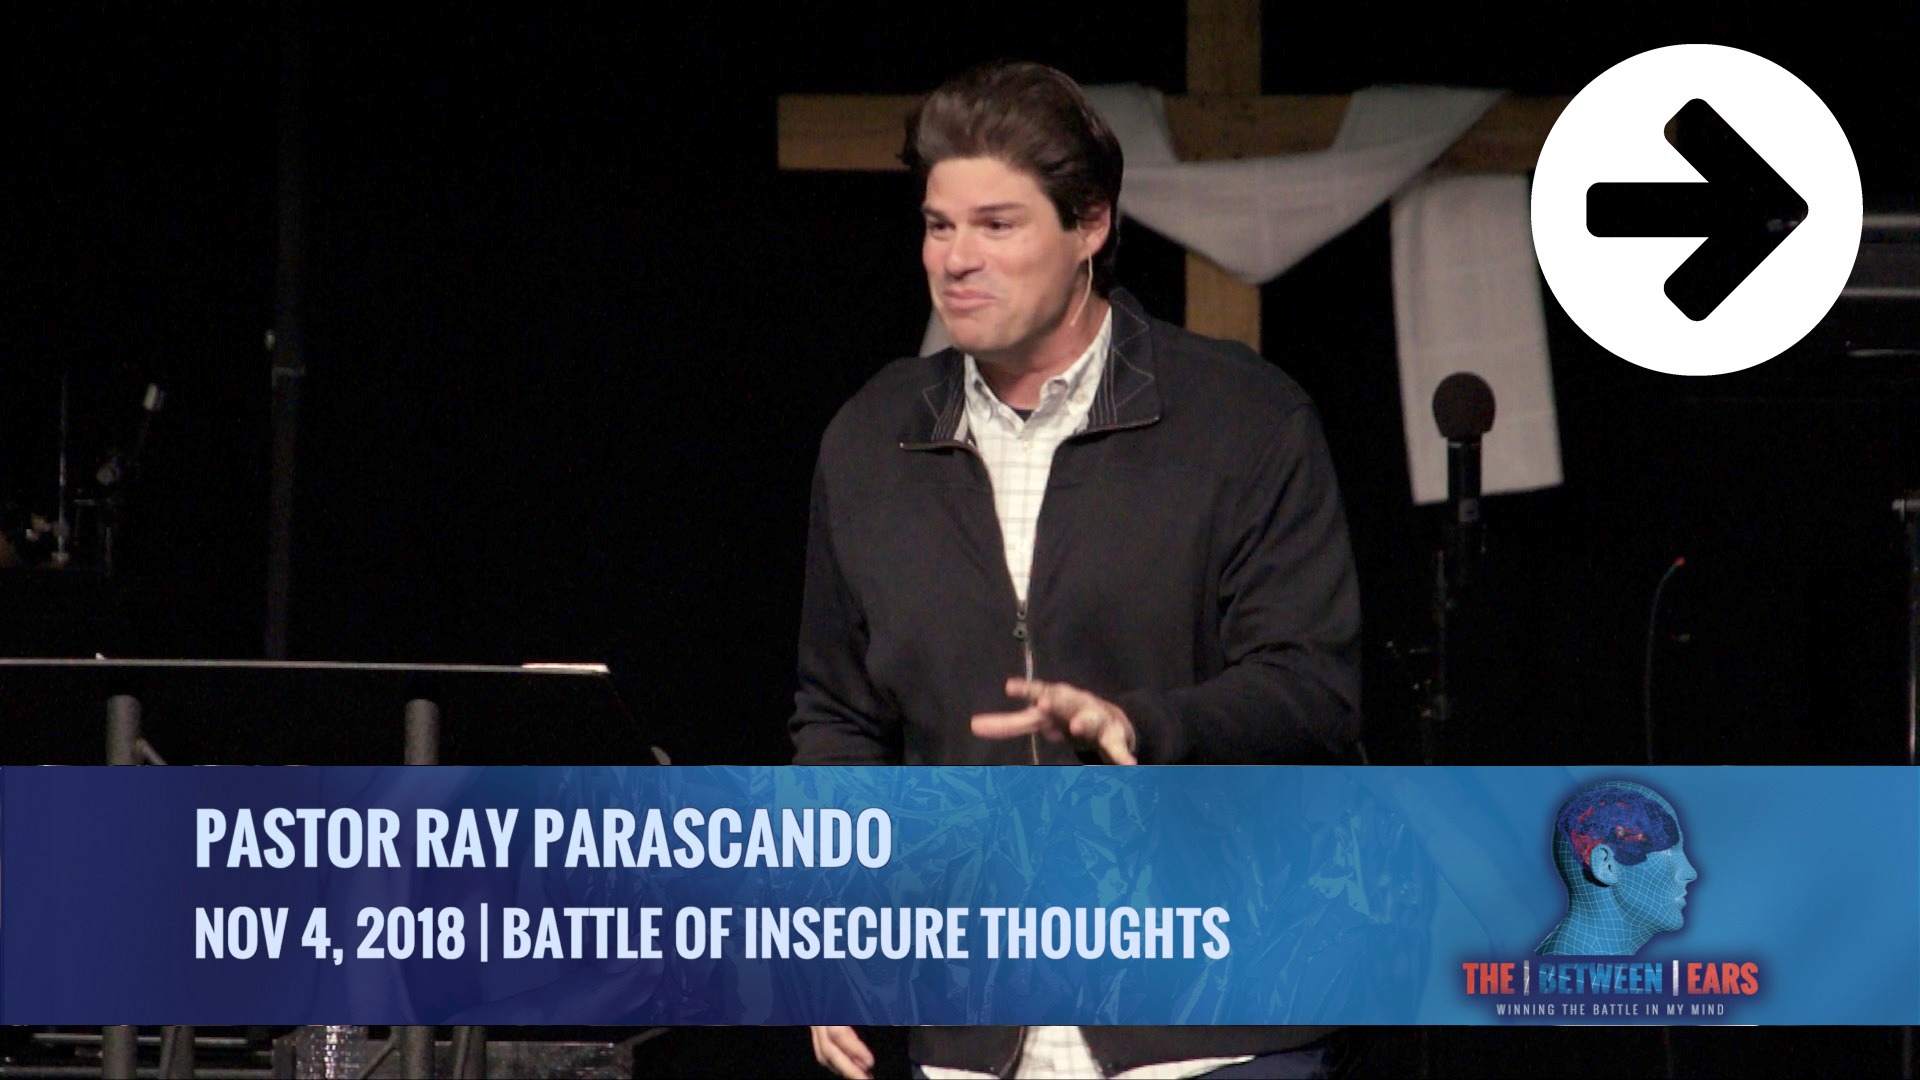 Battle Of Insecure Thoughts Image